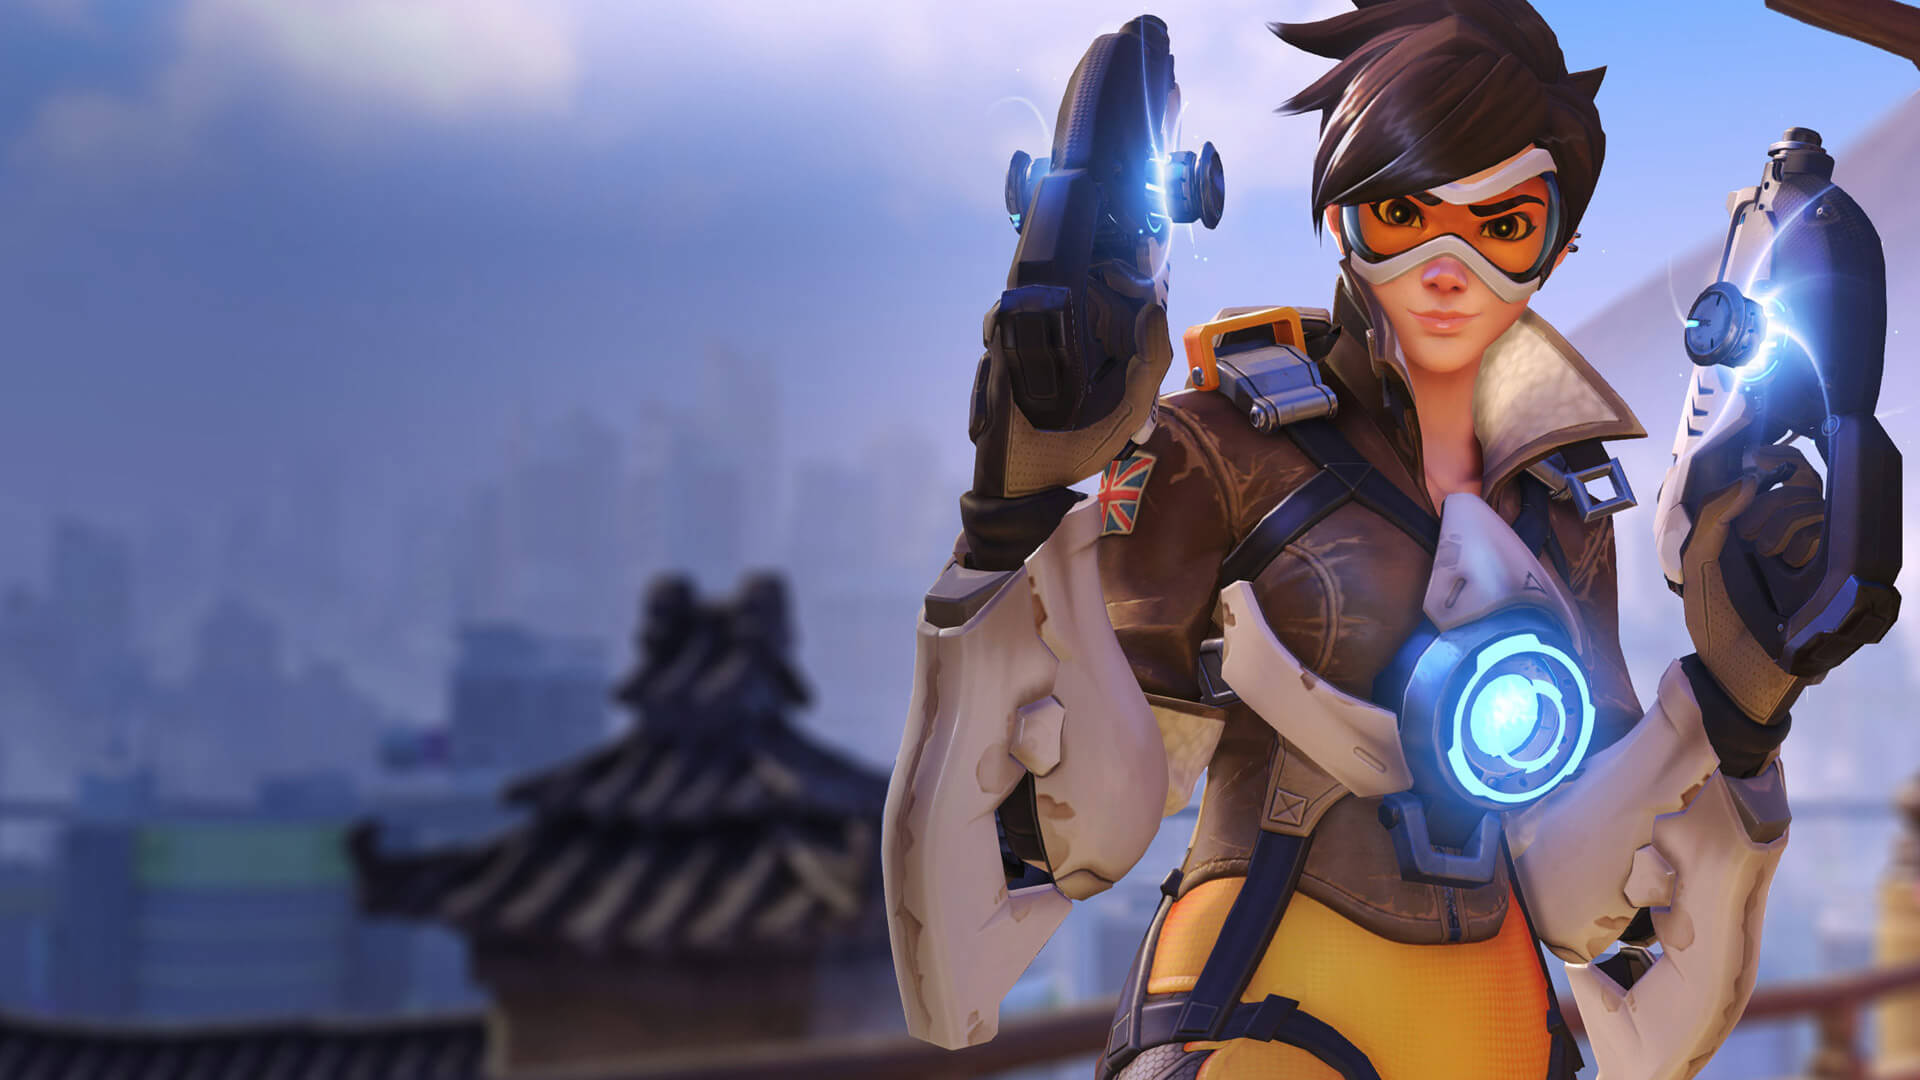 Tracer remains one of my favourite heroes in Overwatch.